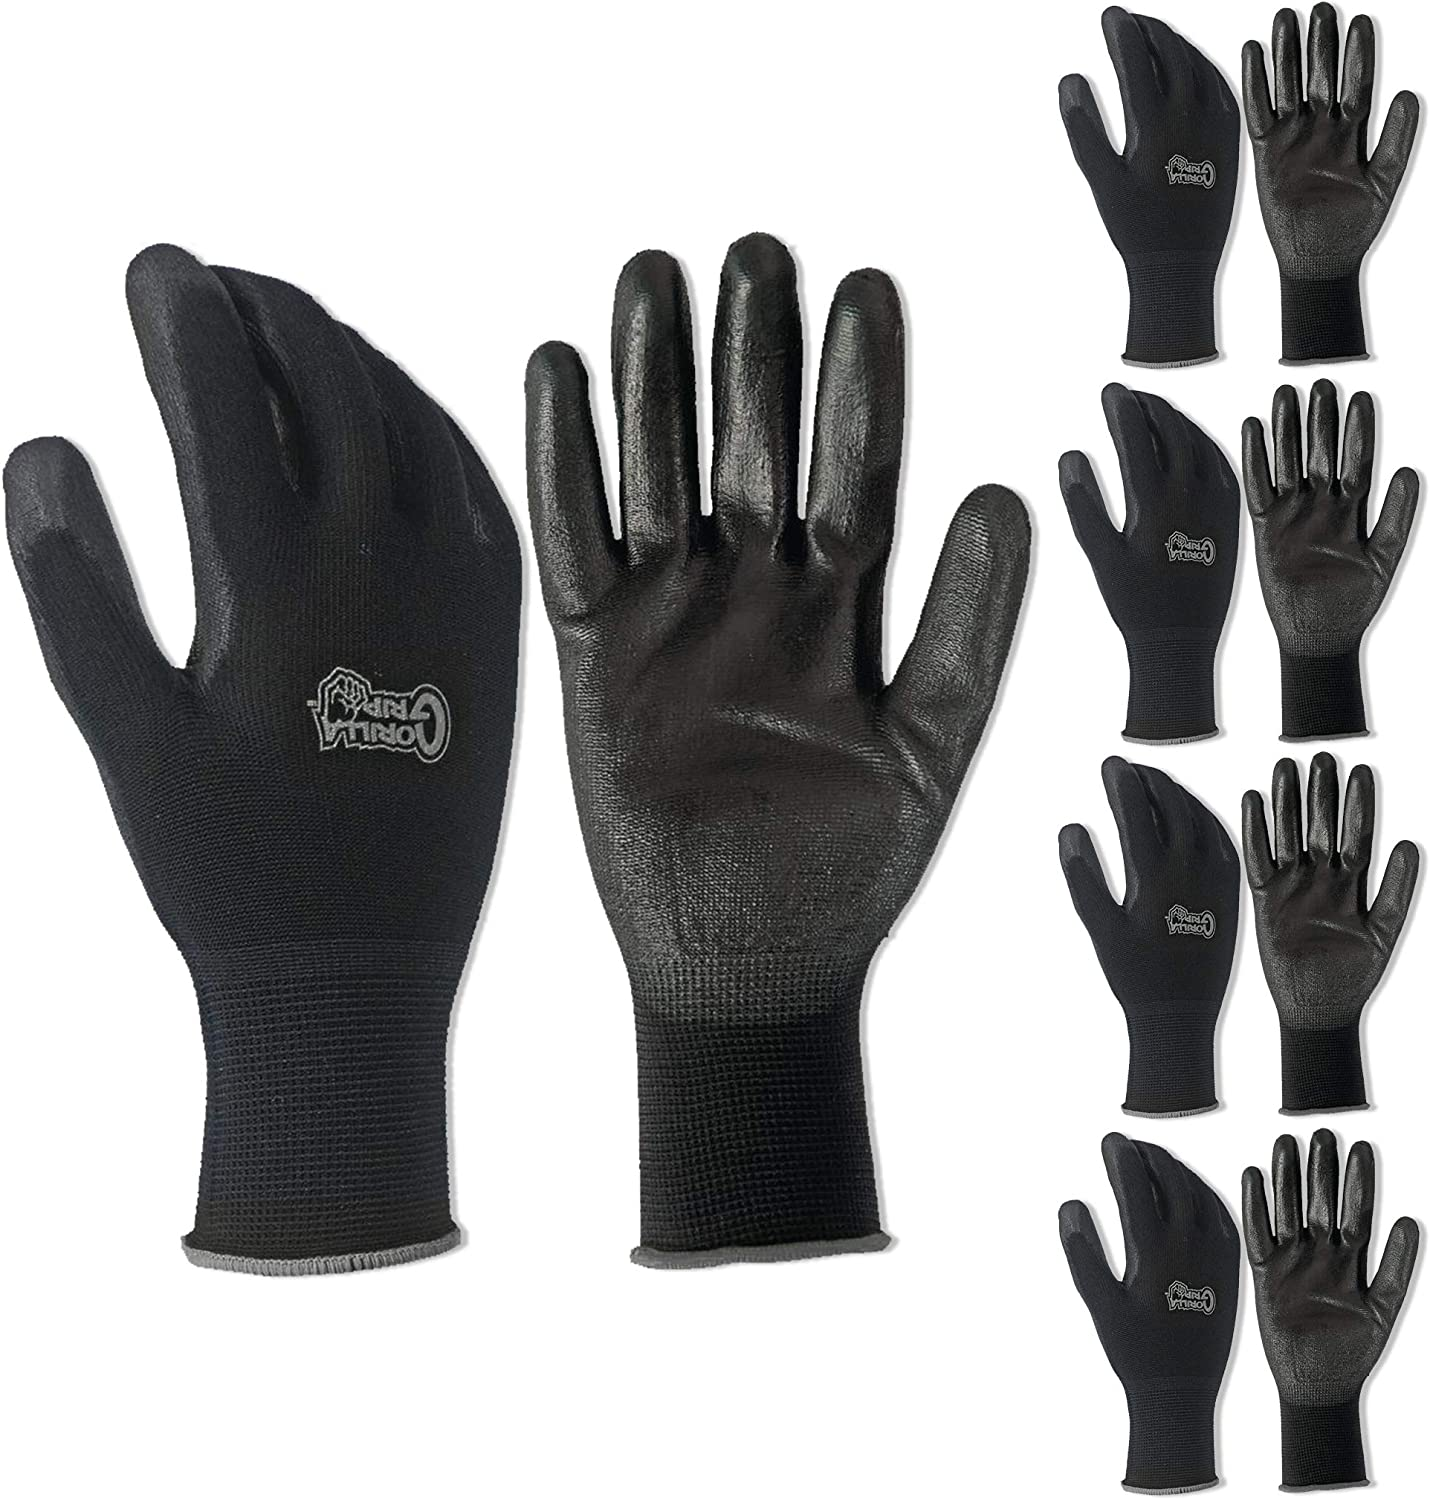 5 PACK Gorilla Grip Gloves - Extra Large XL